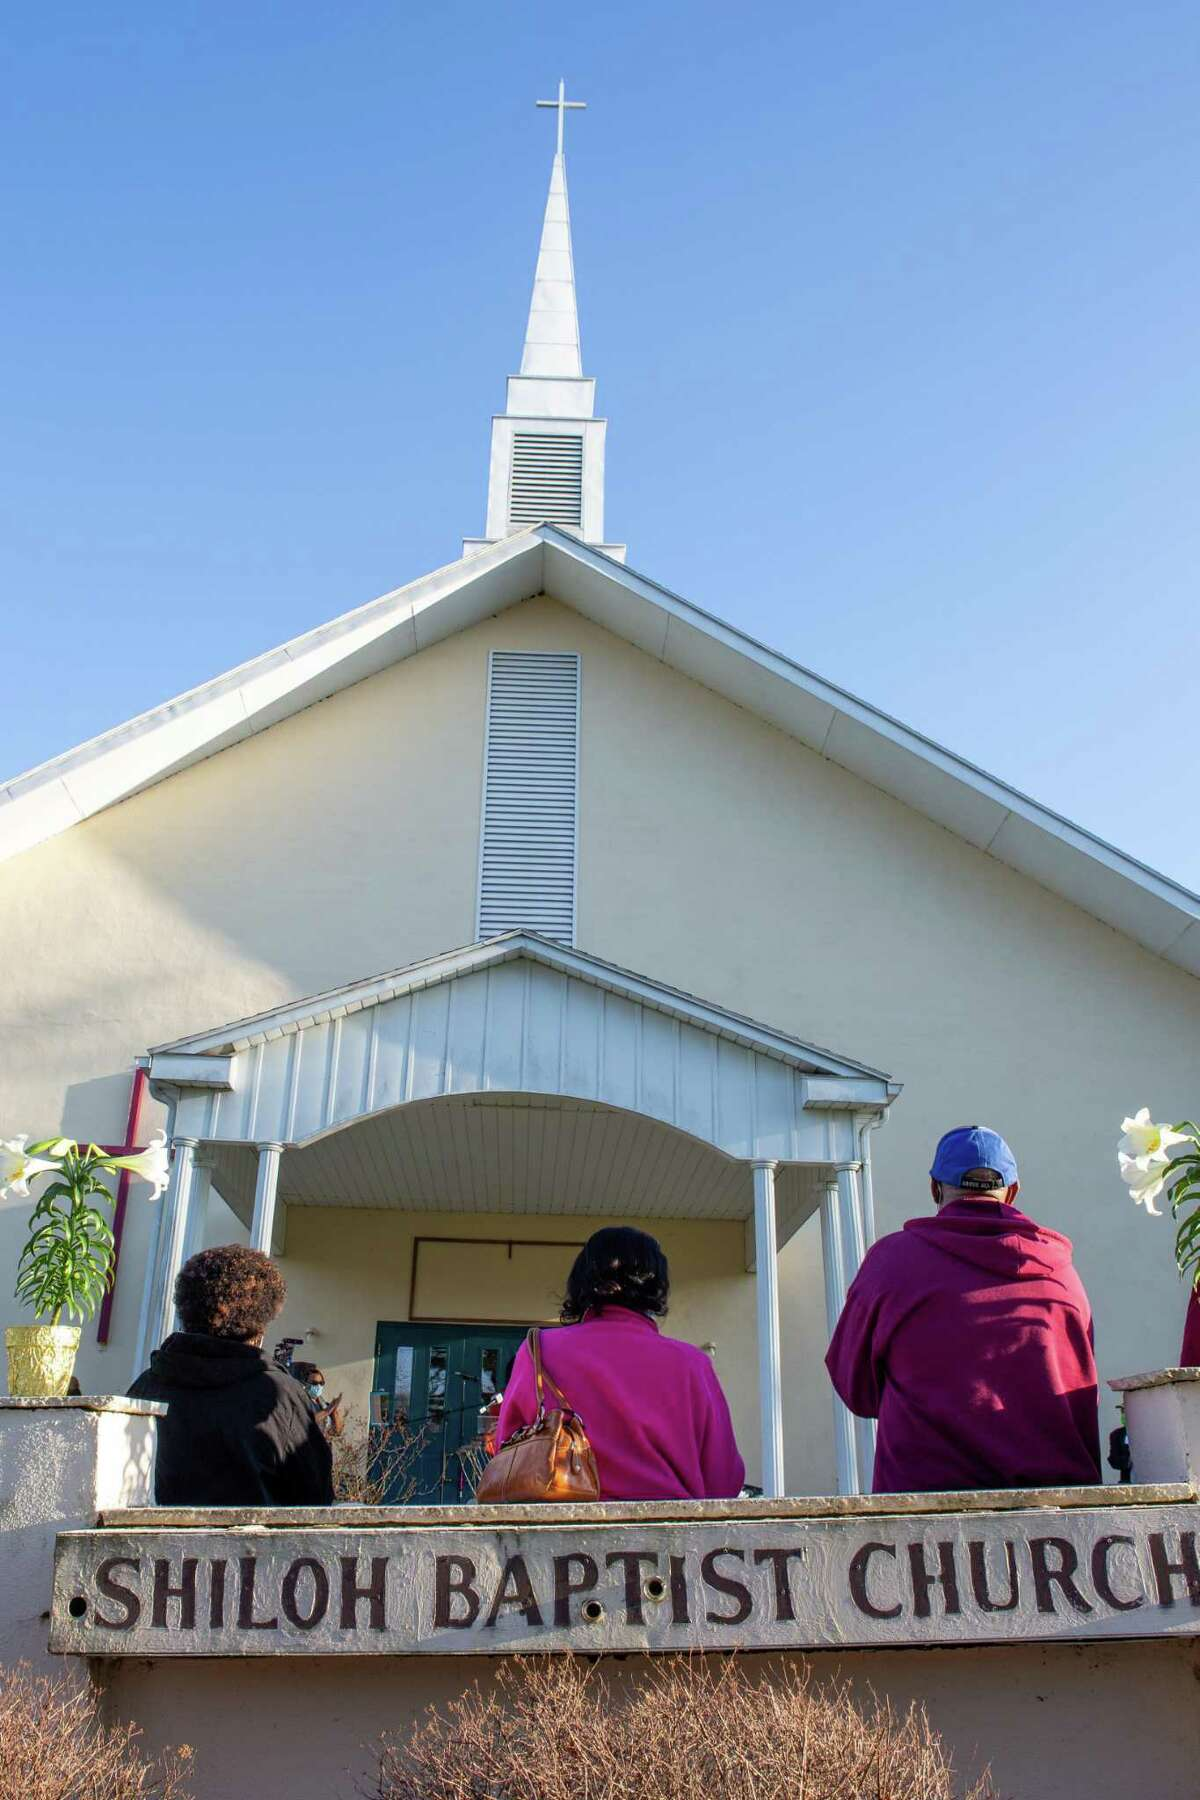 Shiloh Baptist Church, at 346 Butternut St., Middletown, held a vigil April 6 for Connecticut residents who lost their lives to COVID-19.